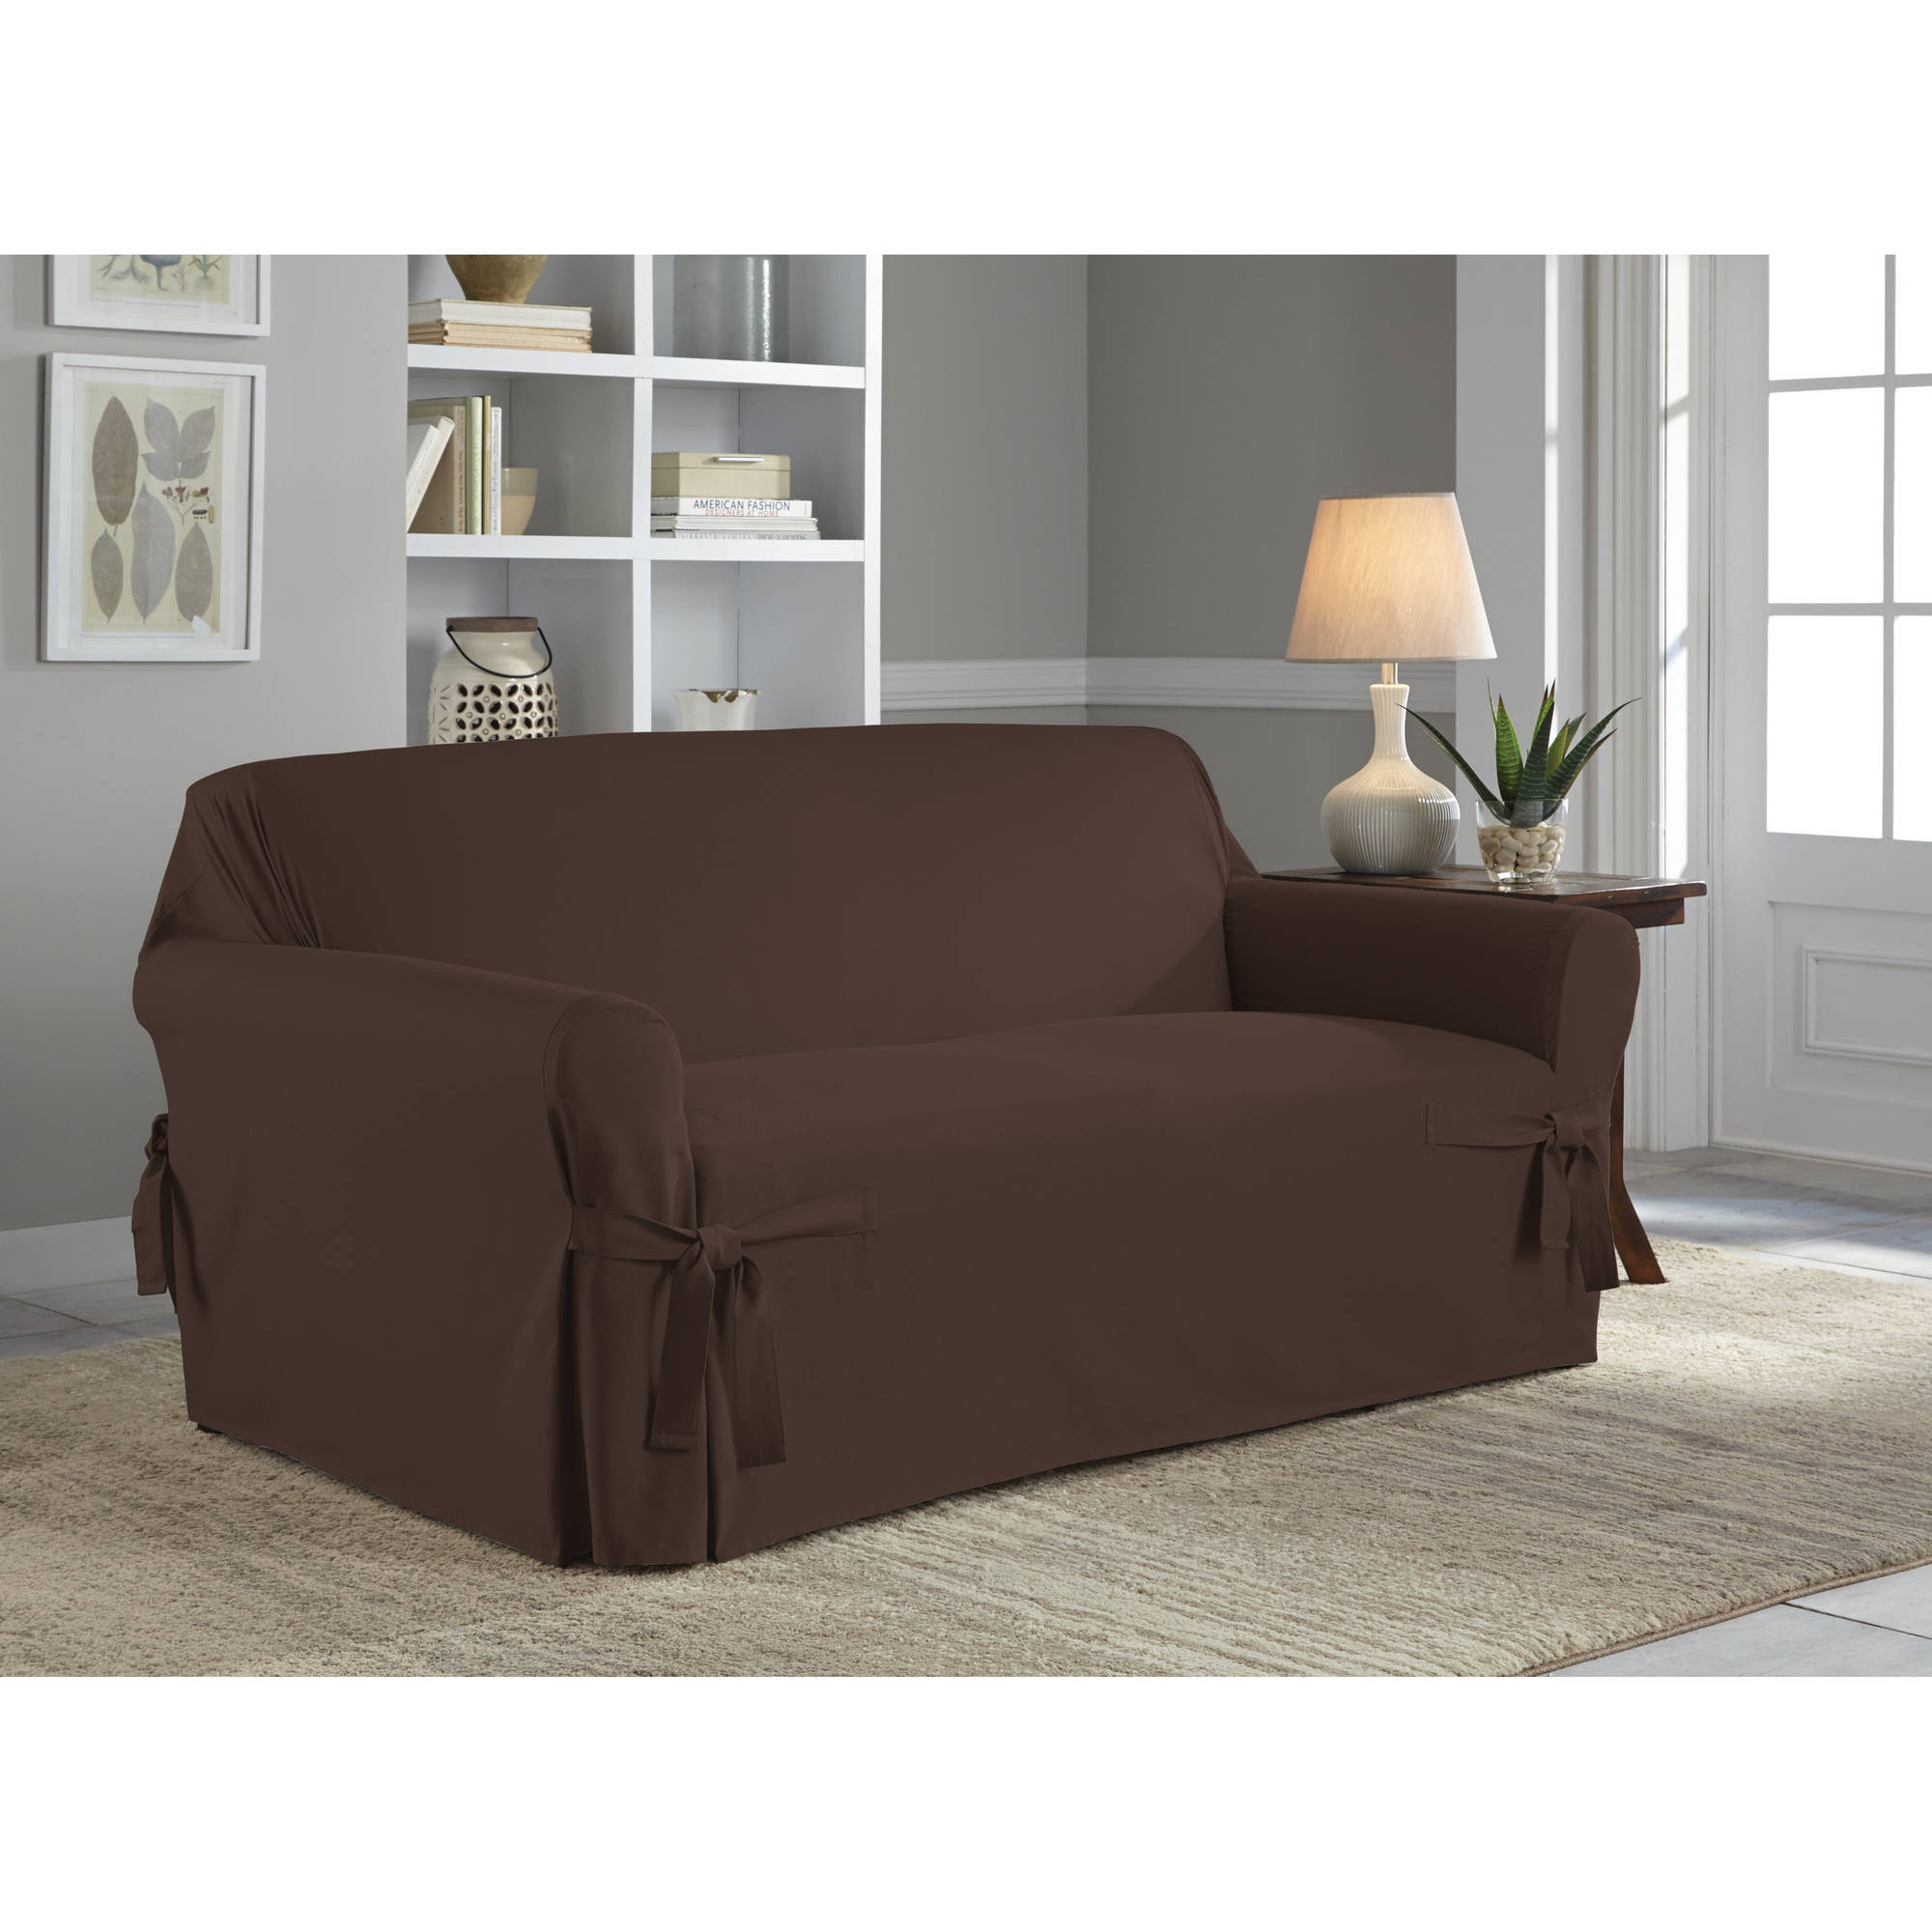 Attractive Serta Relaxed Fit Duck Furniture Slipcover, Loveseat 1 Piece Box Cushion    Walmart.com